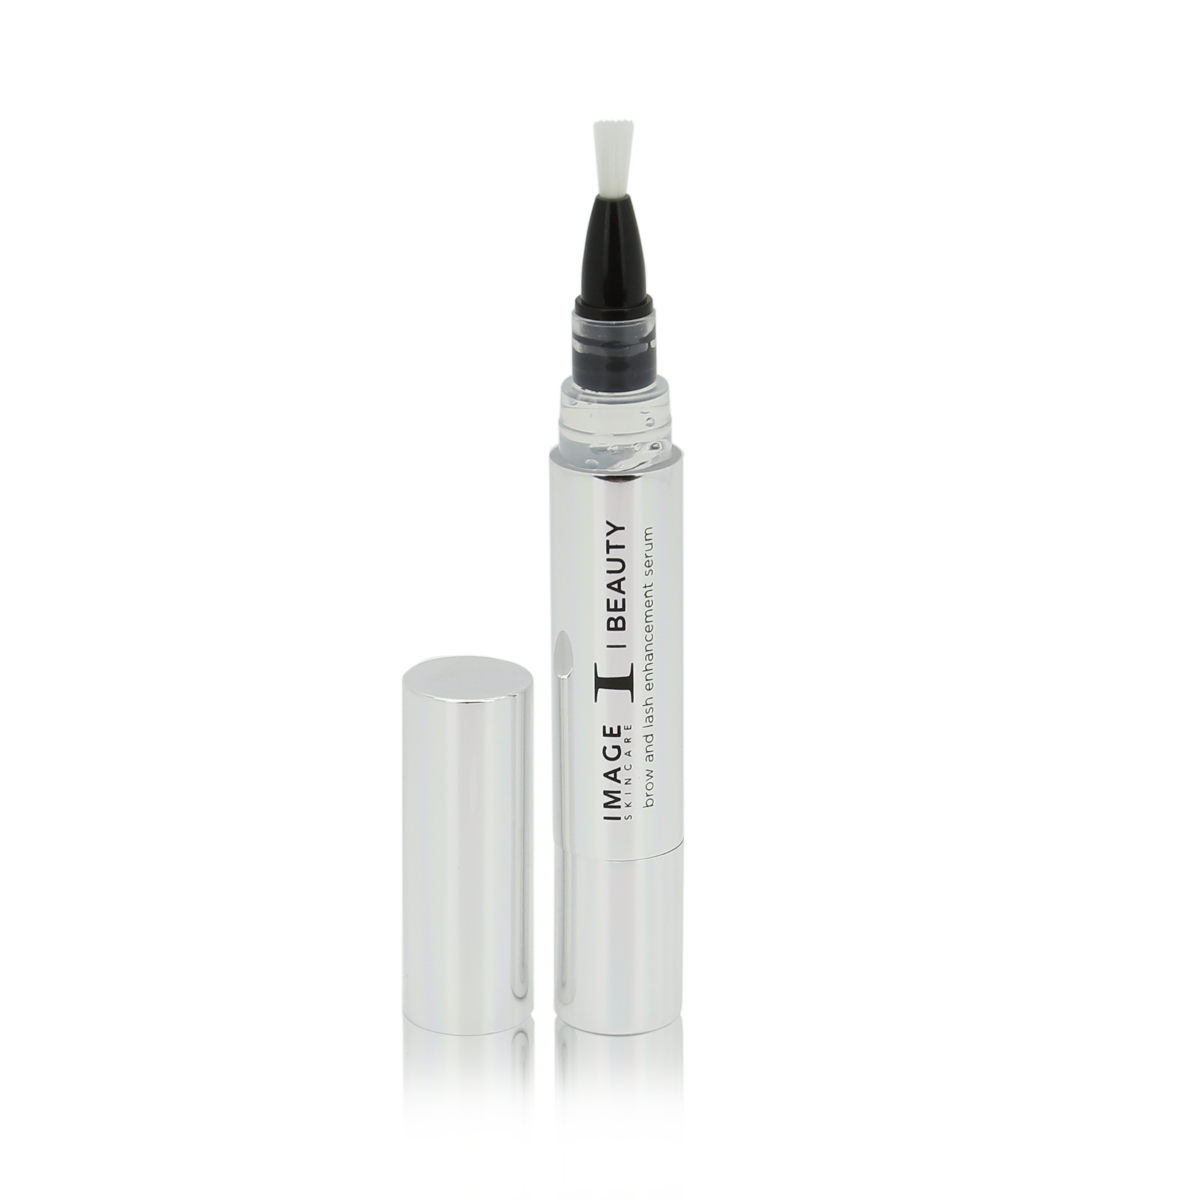 Lash Enhancement Serum